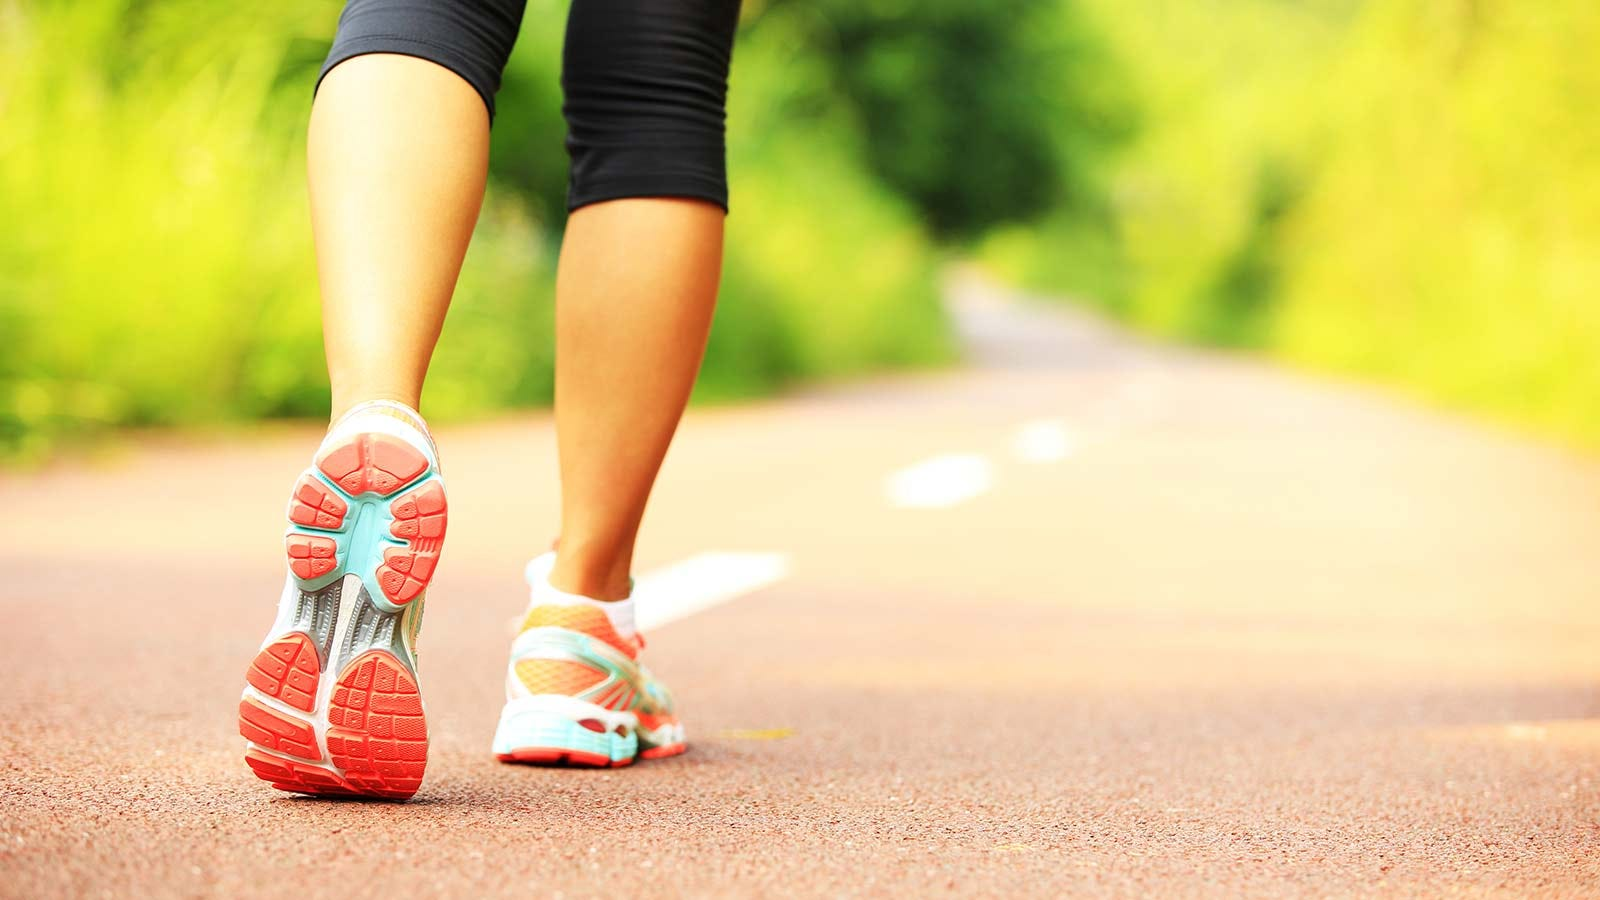 A woman walking a trail in athletic shoes.